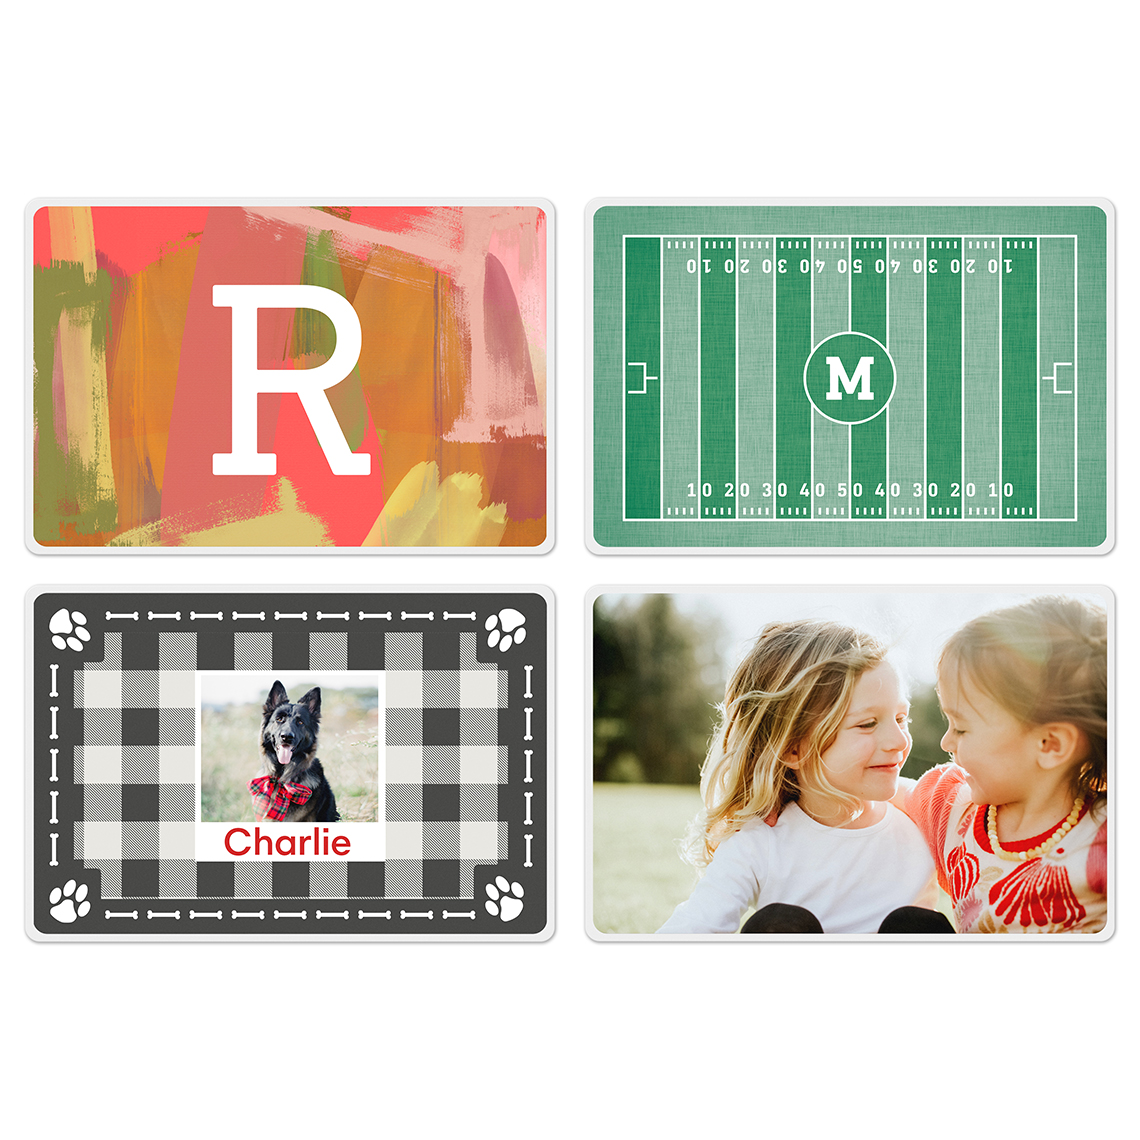 Personalized Placemat Home Gift Gifts Snapfish Us